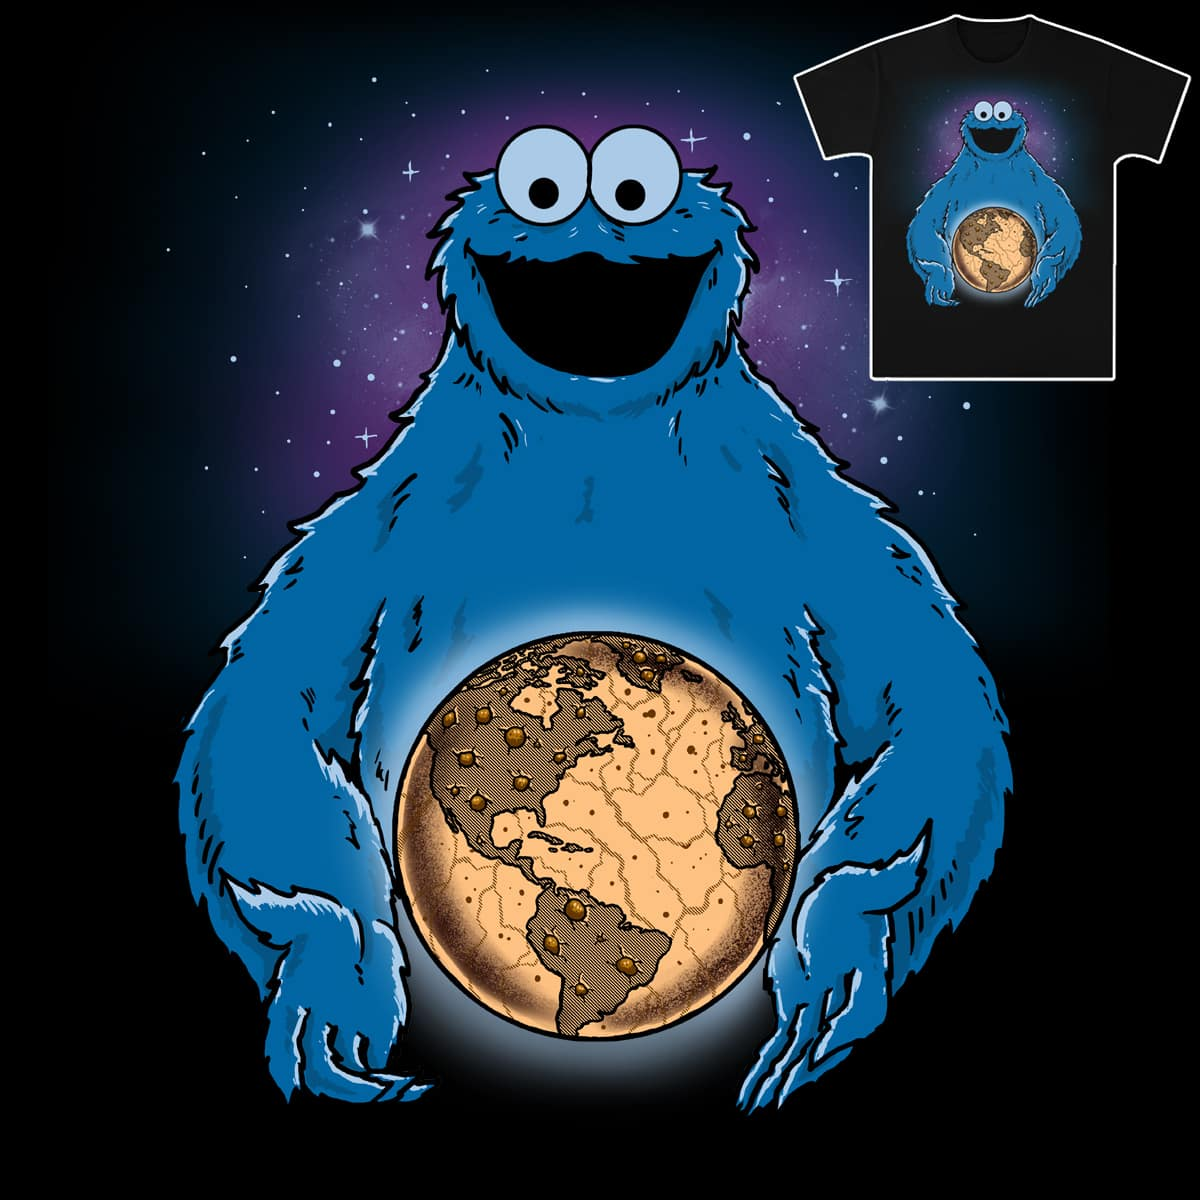 Cookie World by fathi on Threadless